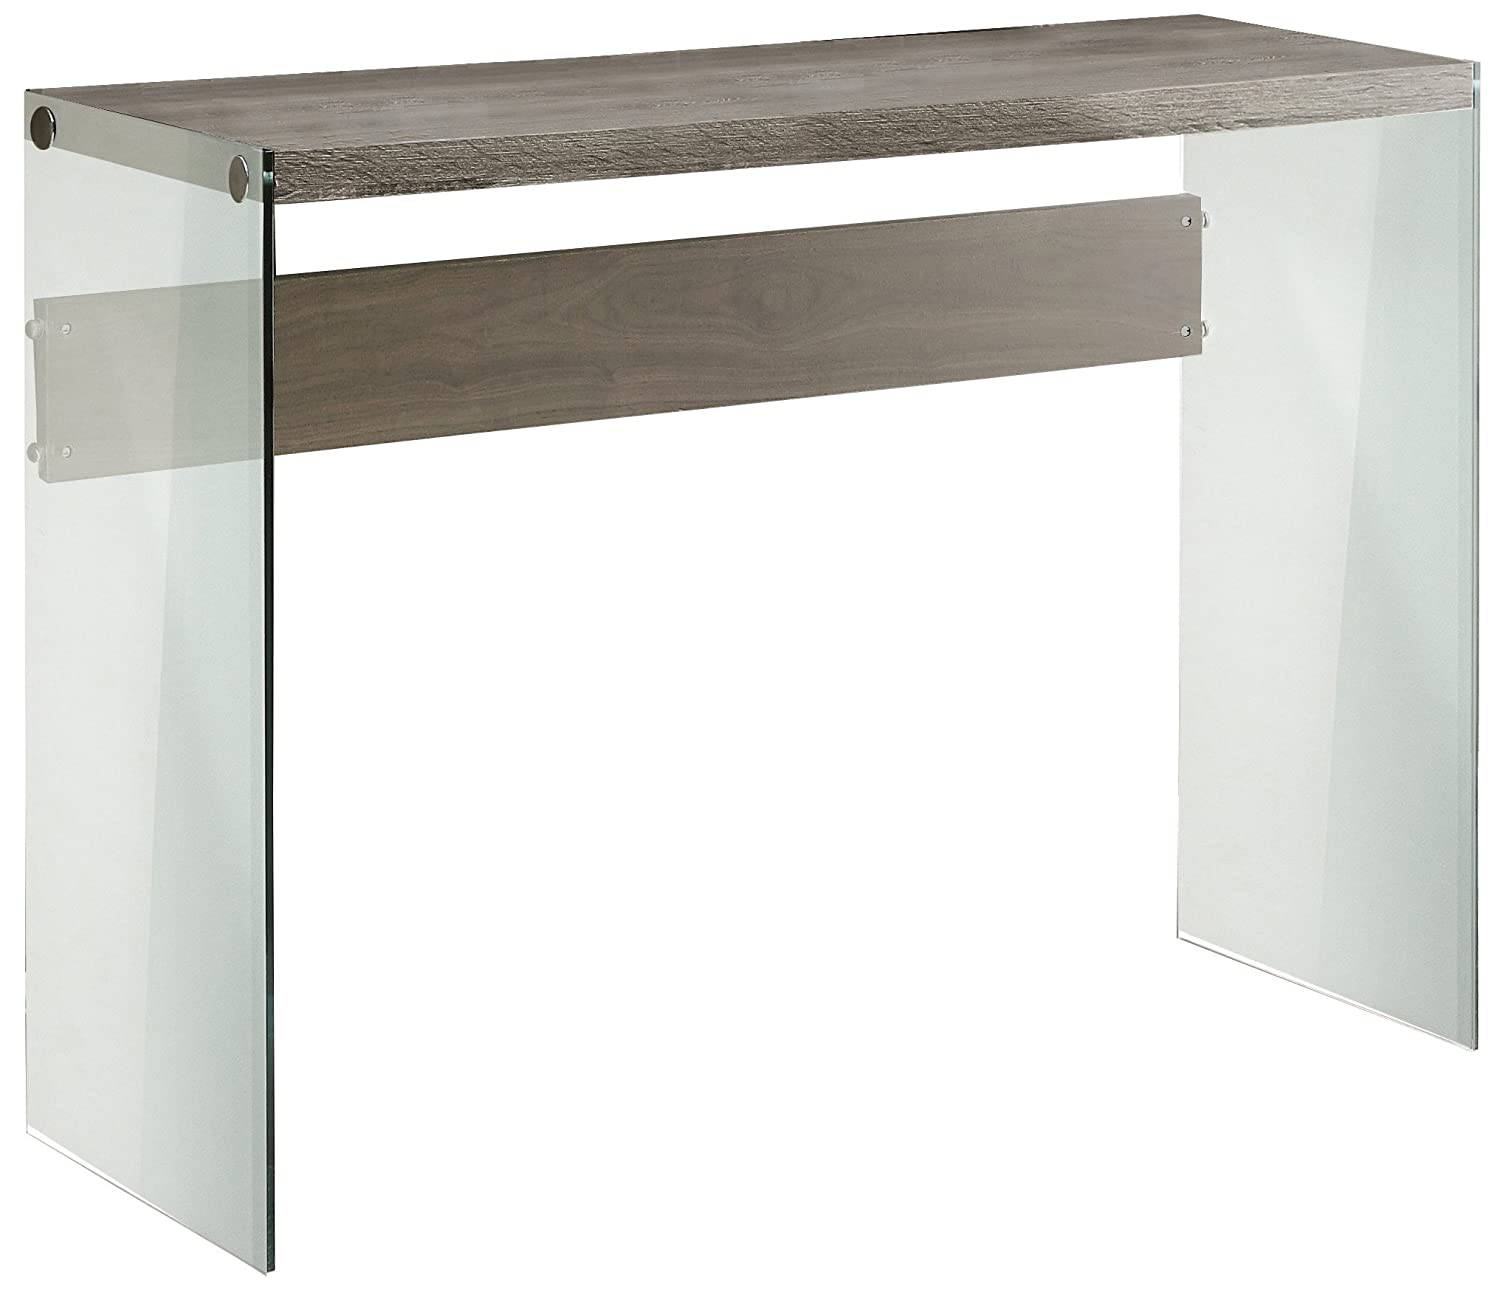 Monarch Specialties Reclaimed-Look/Tempered Glass Sofa Table, Dark Taupe I 3055